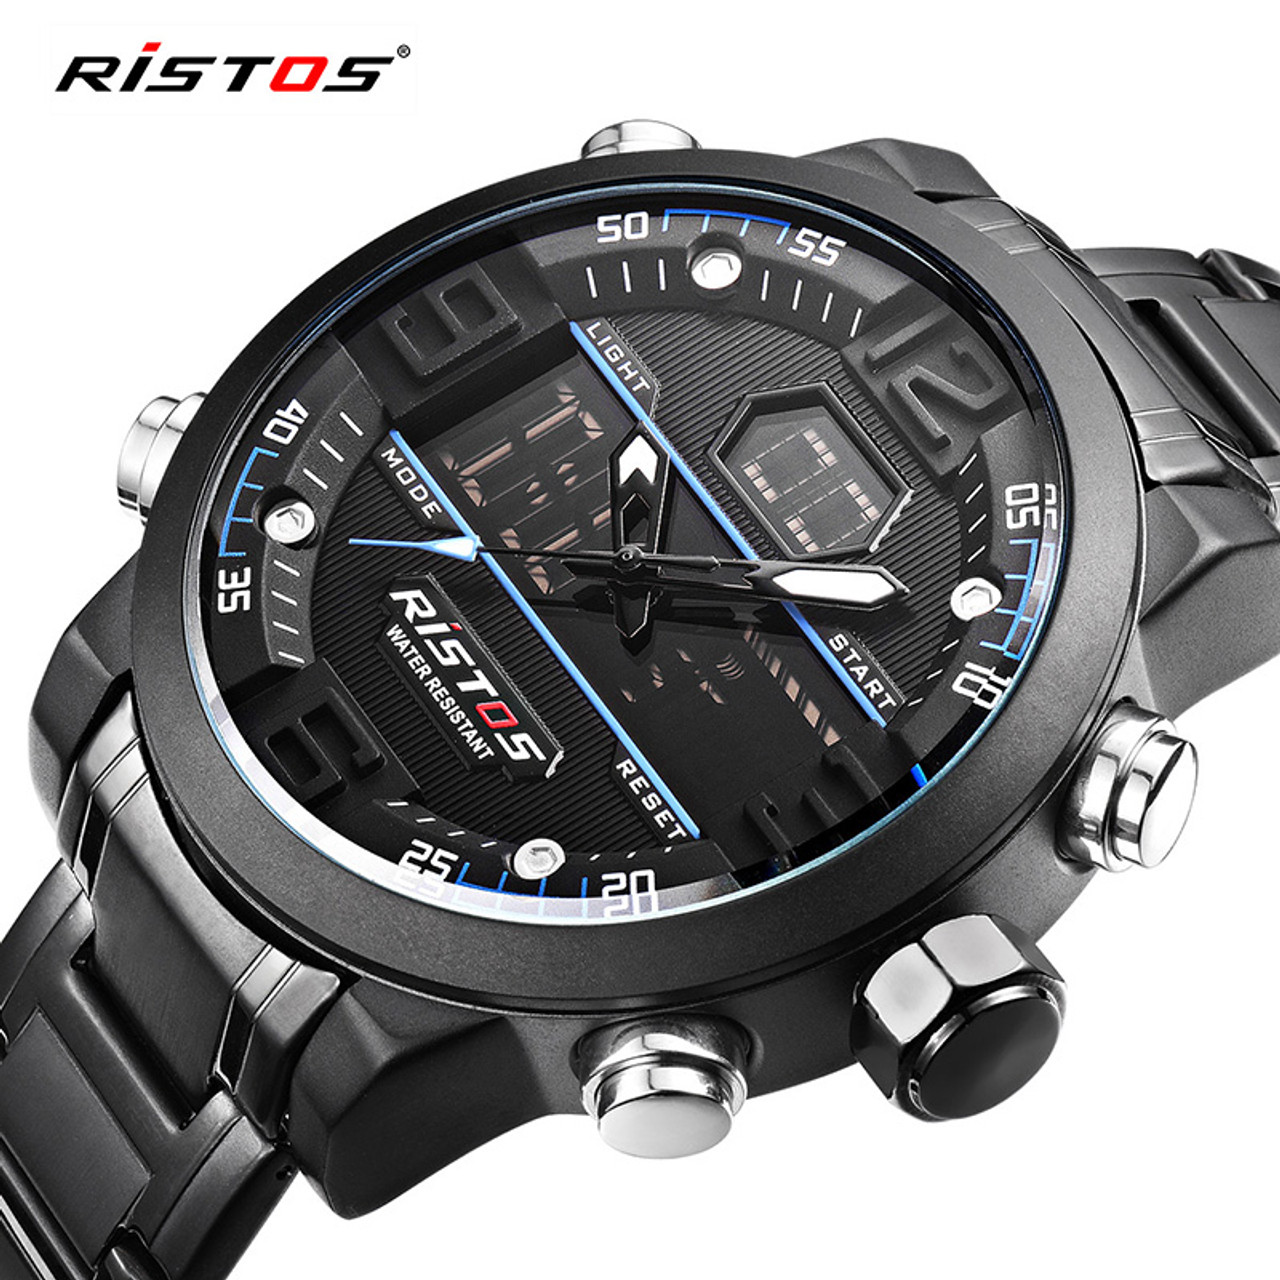 5f63f70836cc RISTOS Relojes Masculino Hombre Fashion Multifunction Steel Men Sport  Watches Chronograph Digital Waterproof Wristwatch New 9338 ...